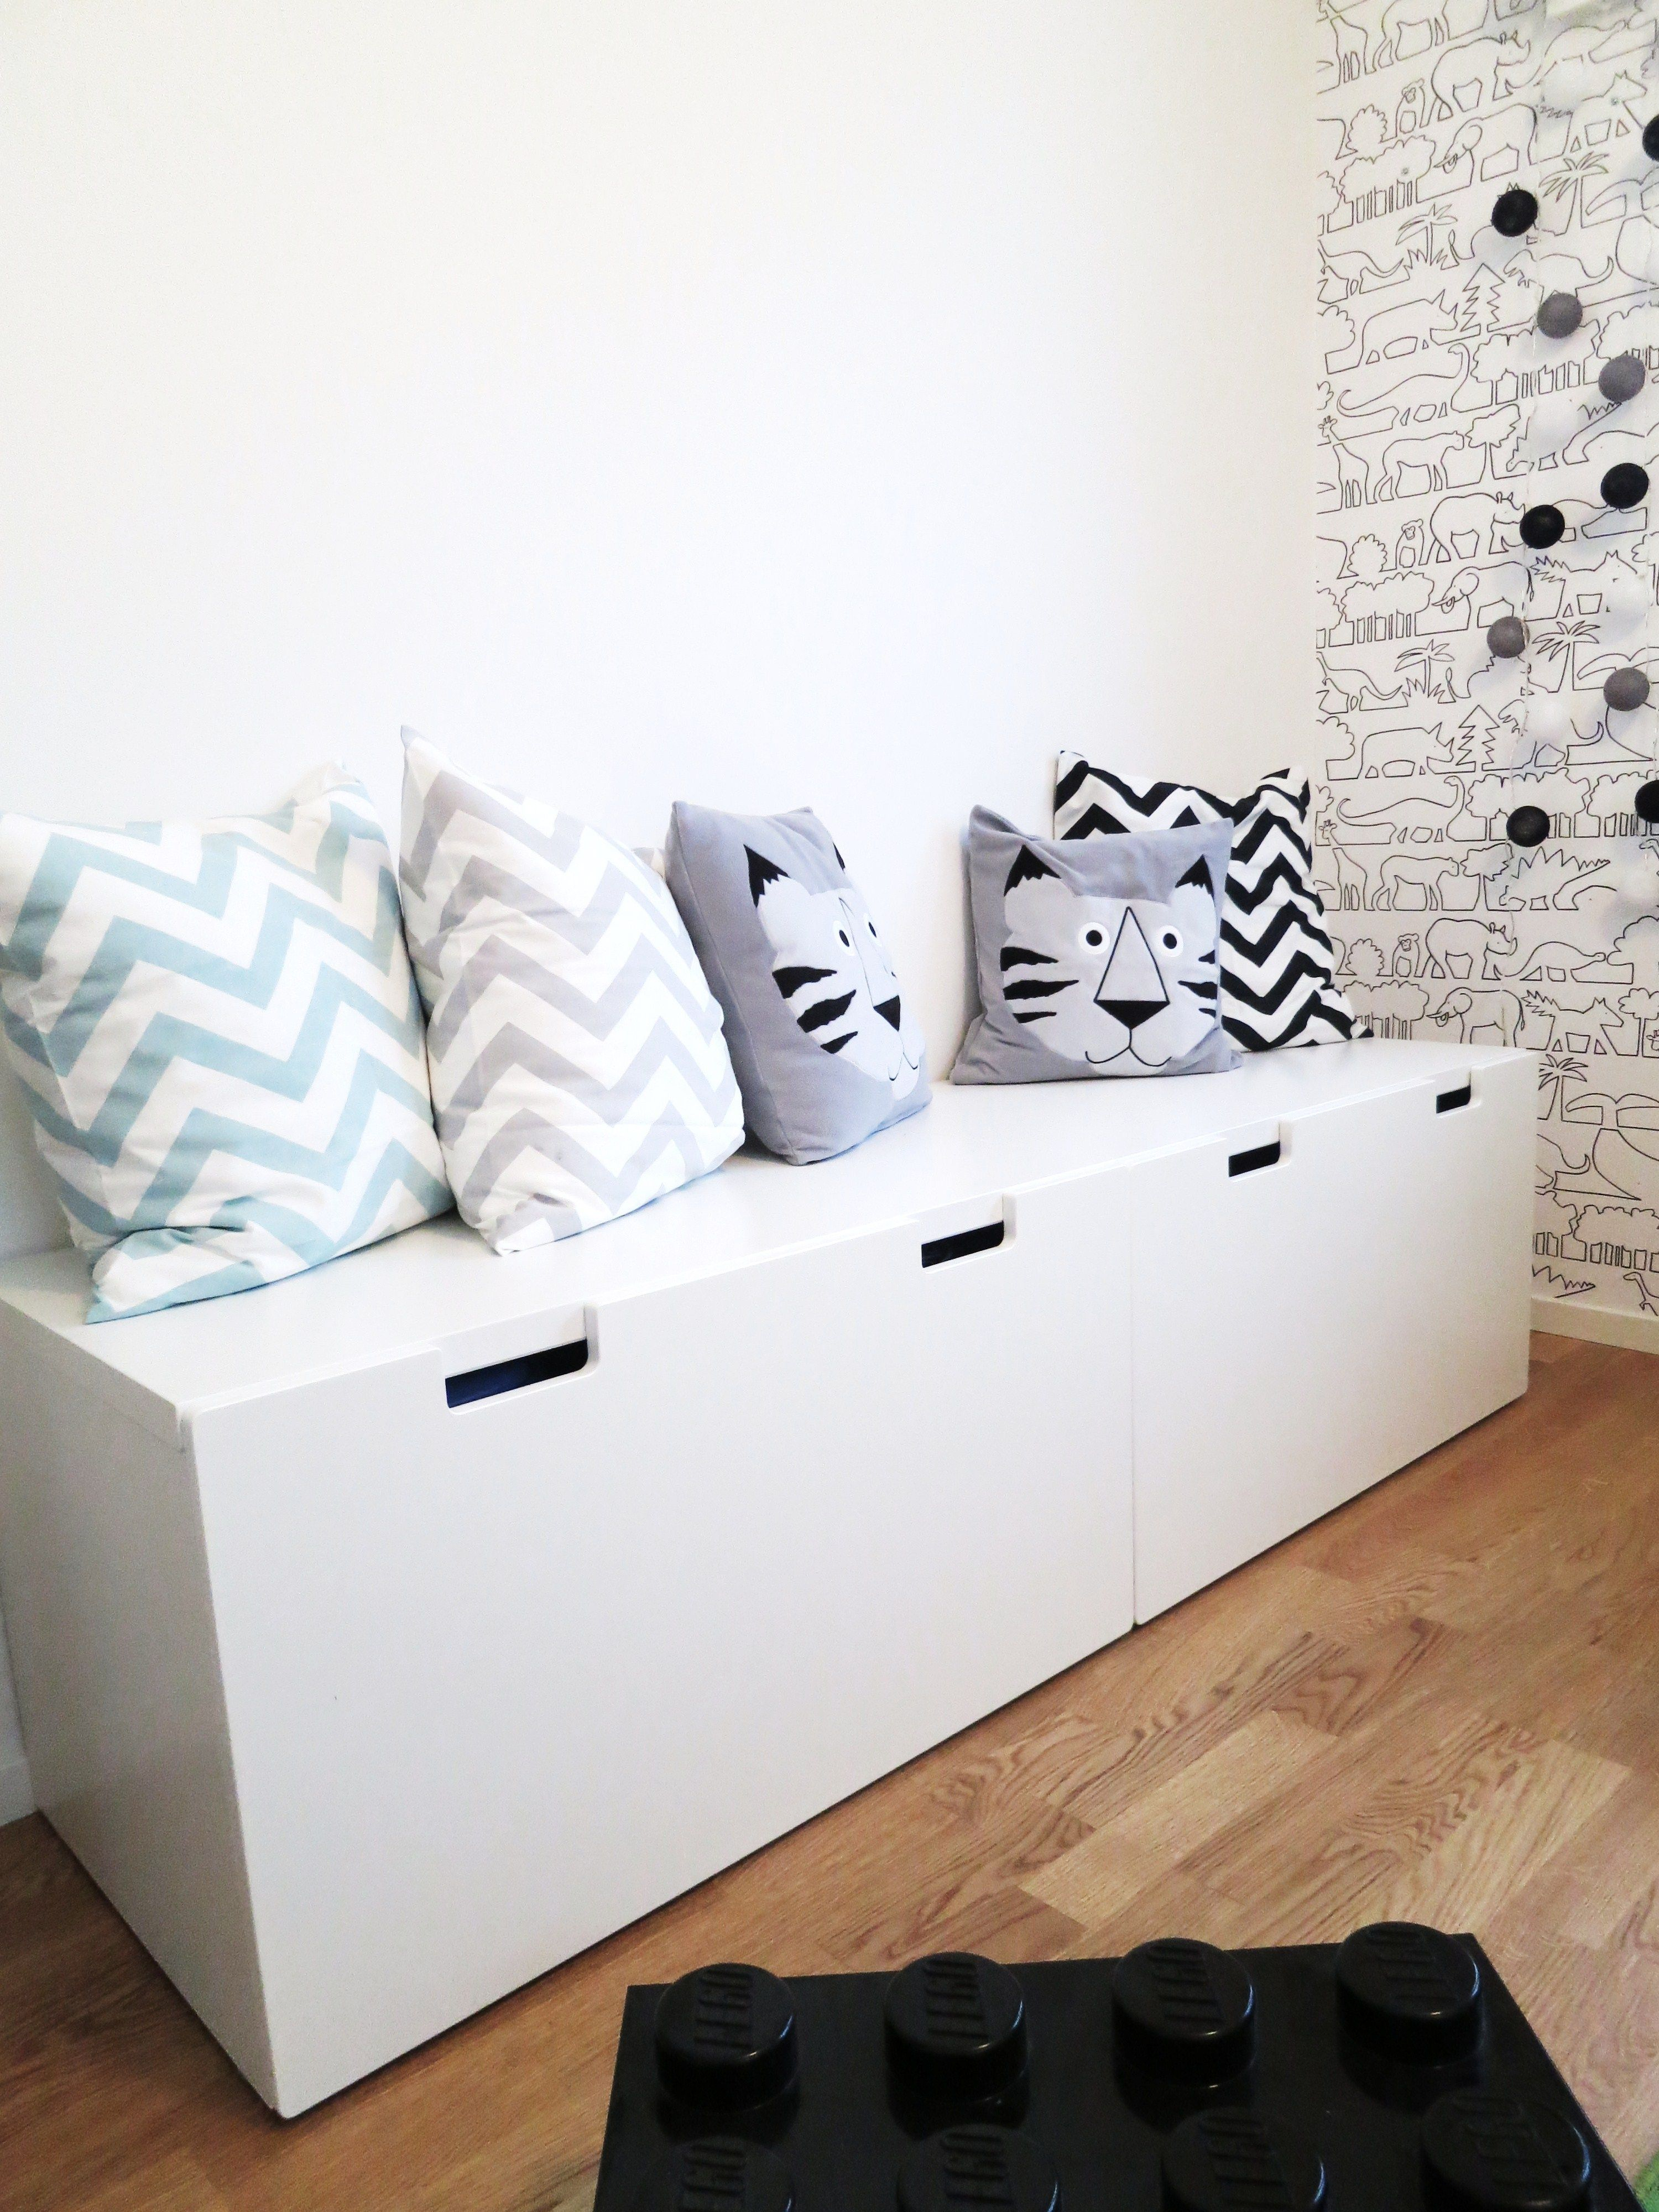 Stuva Lade Stuva Ikea Idea For Toy Storage Have One Already Add Cushions